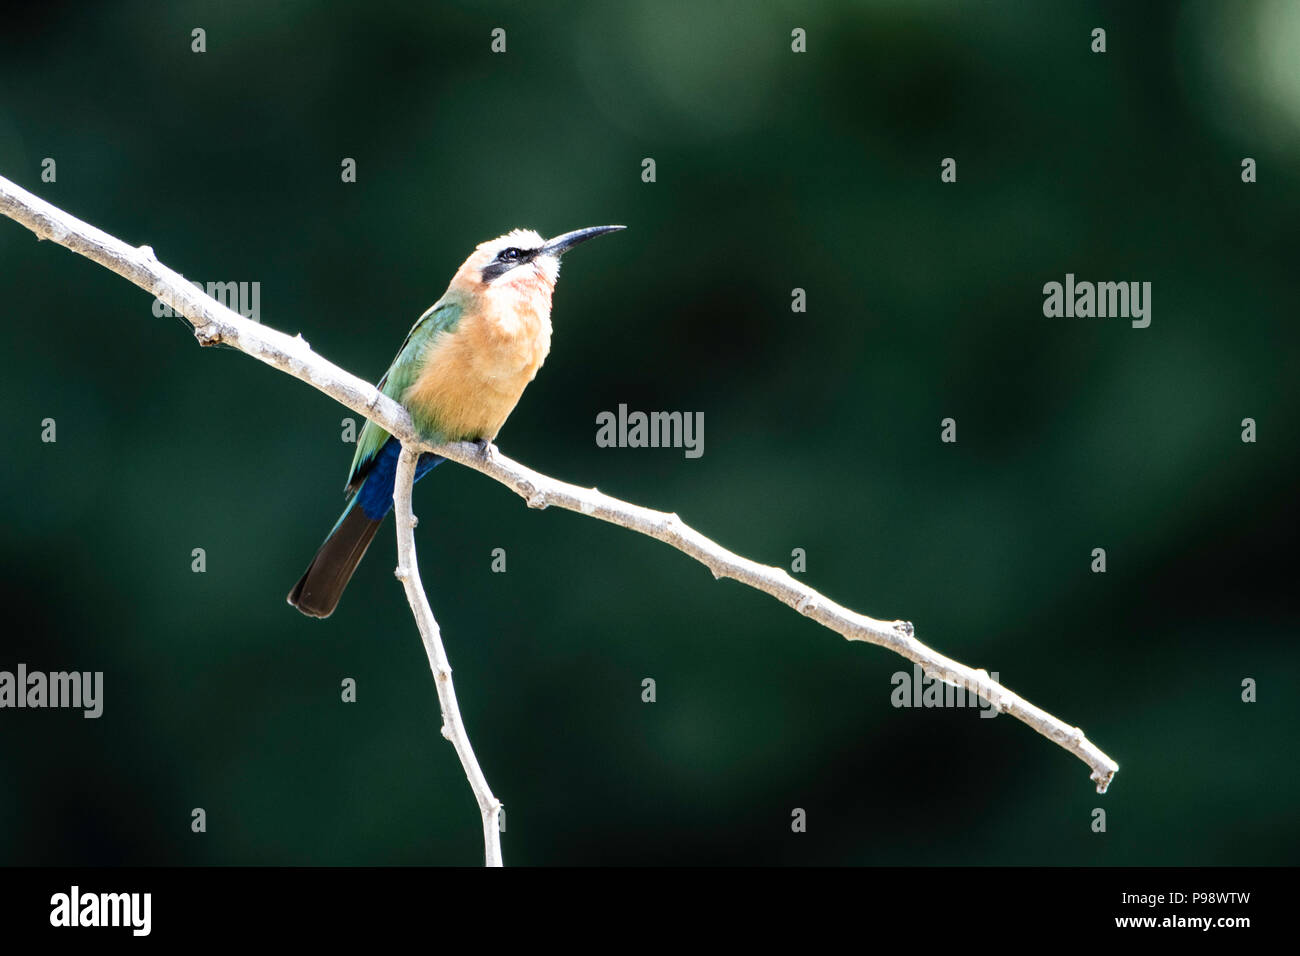 White Fronted Bee Eater on a twig, John's Camp, Mana Pools, Zimbabwe - Stock Image